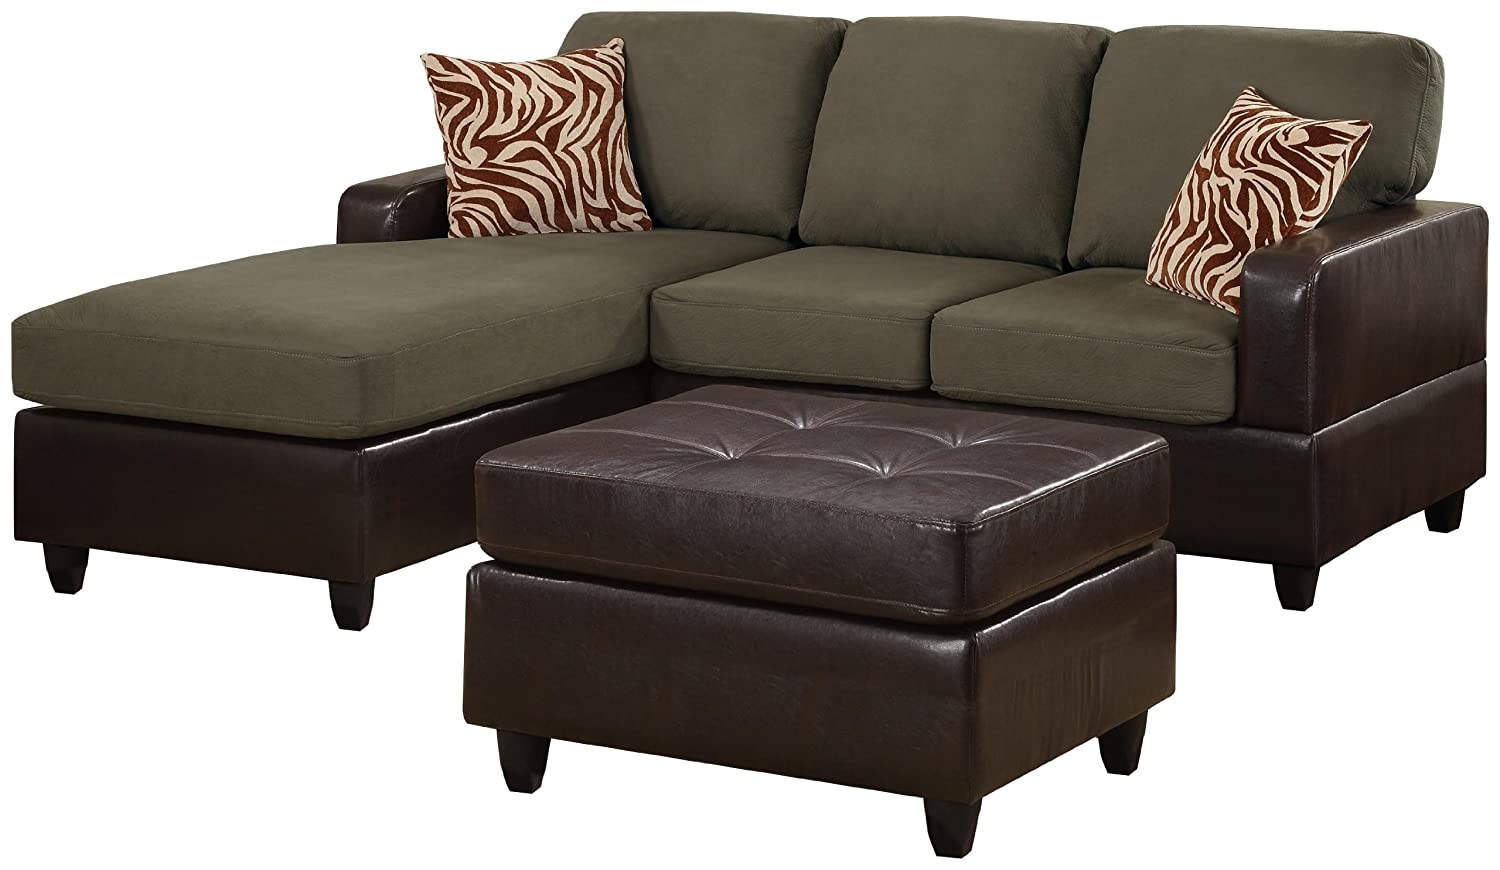 amazoncom bobkona manhattan reversible microfiber piece  - amazoncom bobkona manhattan reversible microfiber piece sectional sofawith faux leather ottoman in sage color kitchen  dining